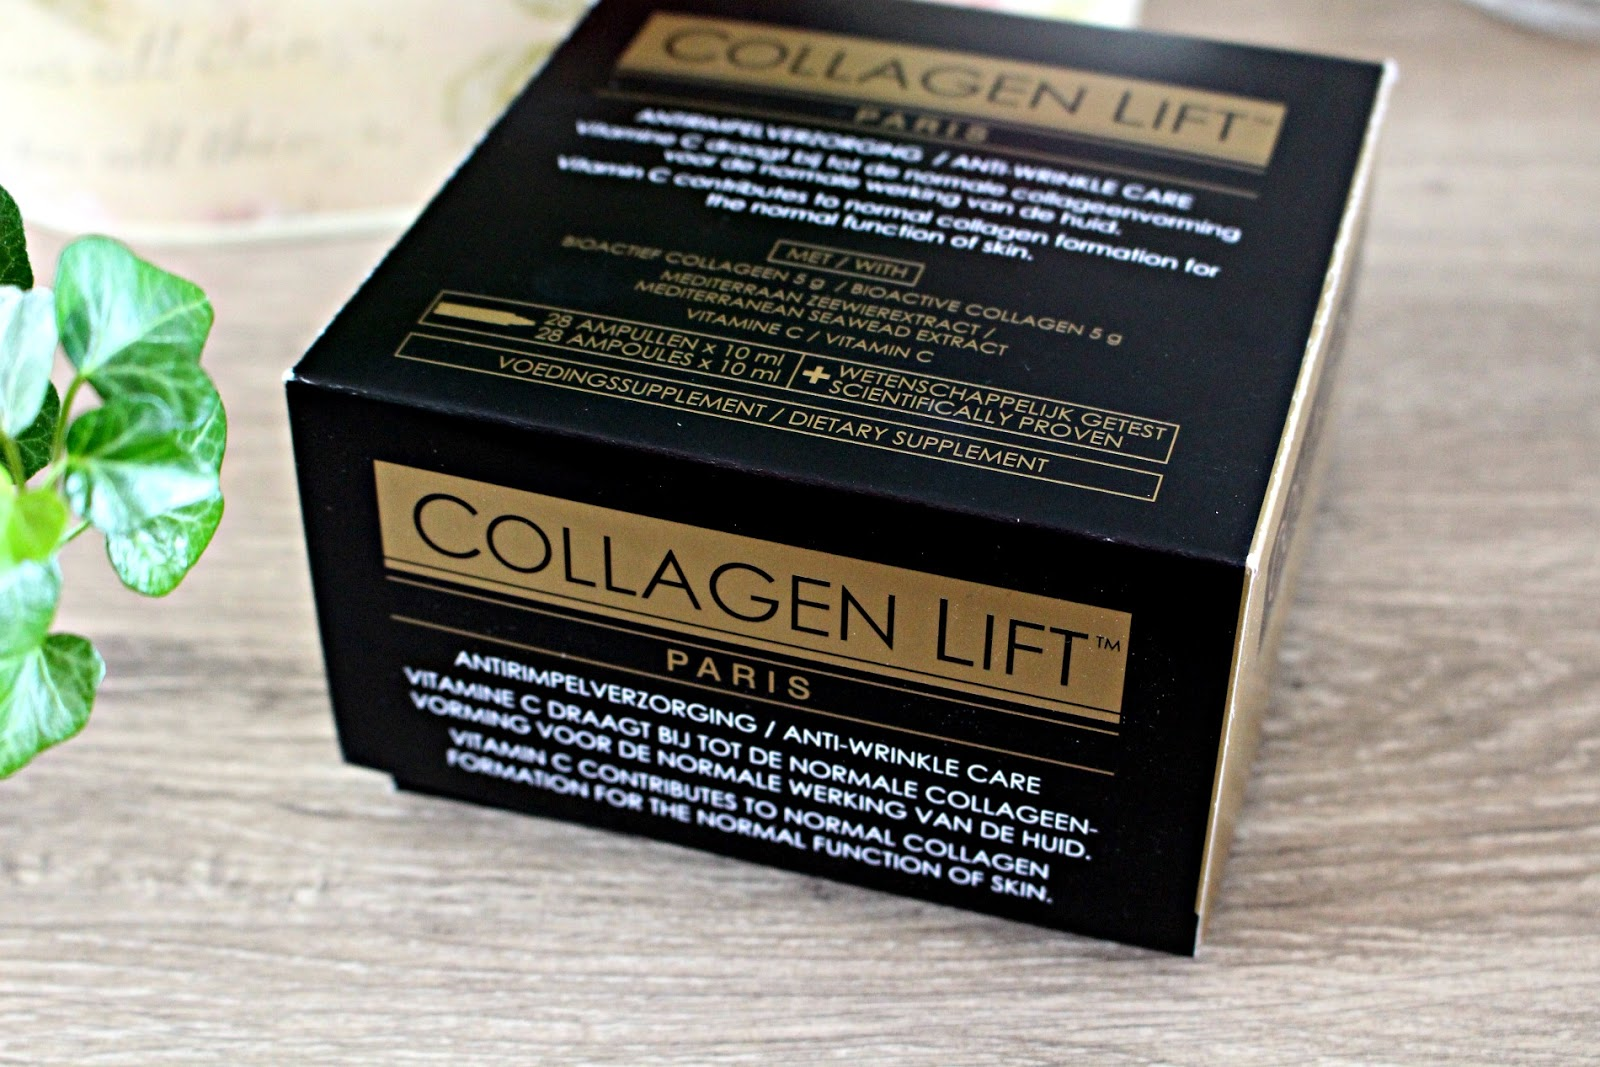 Collagen Lift Paris